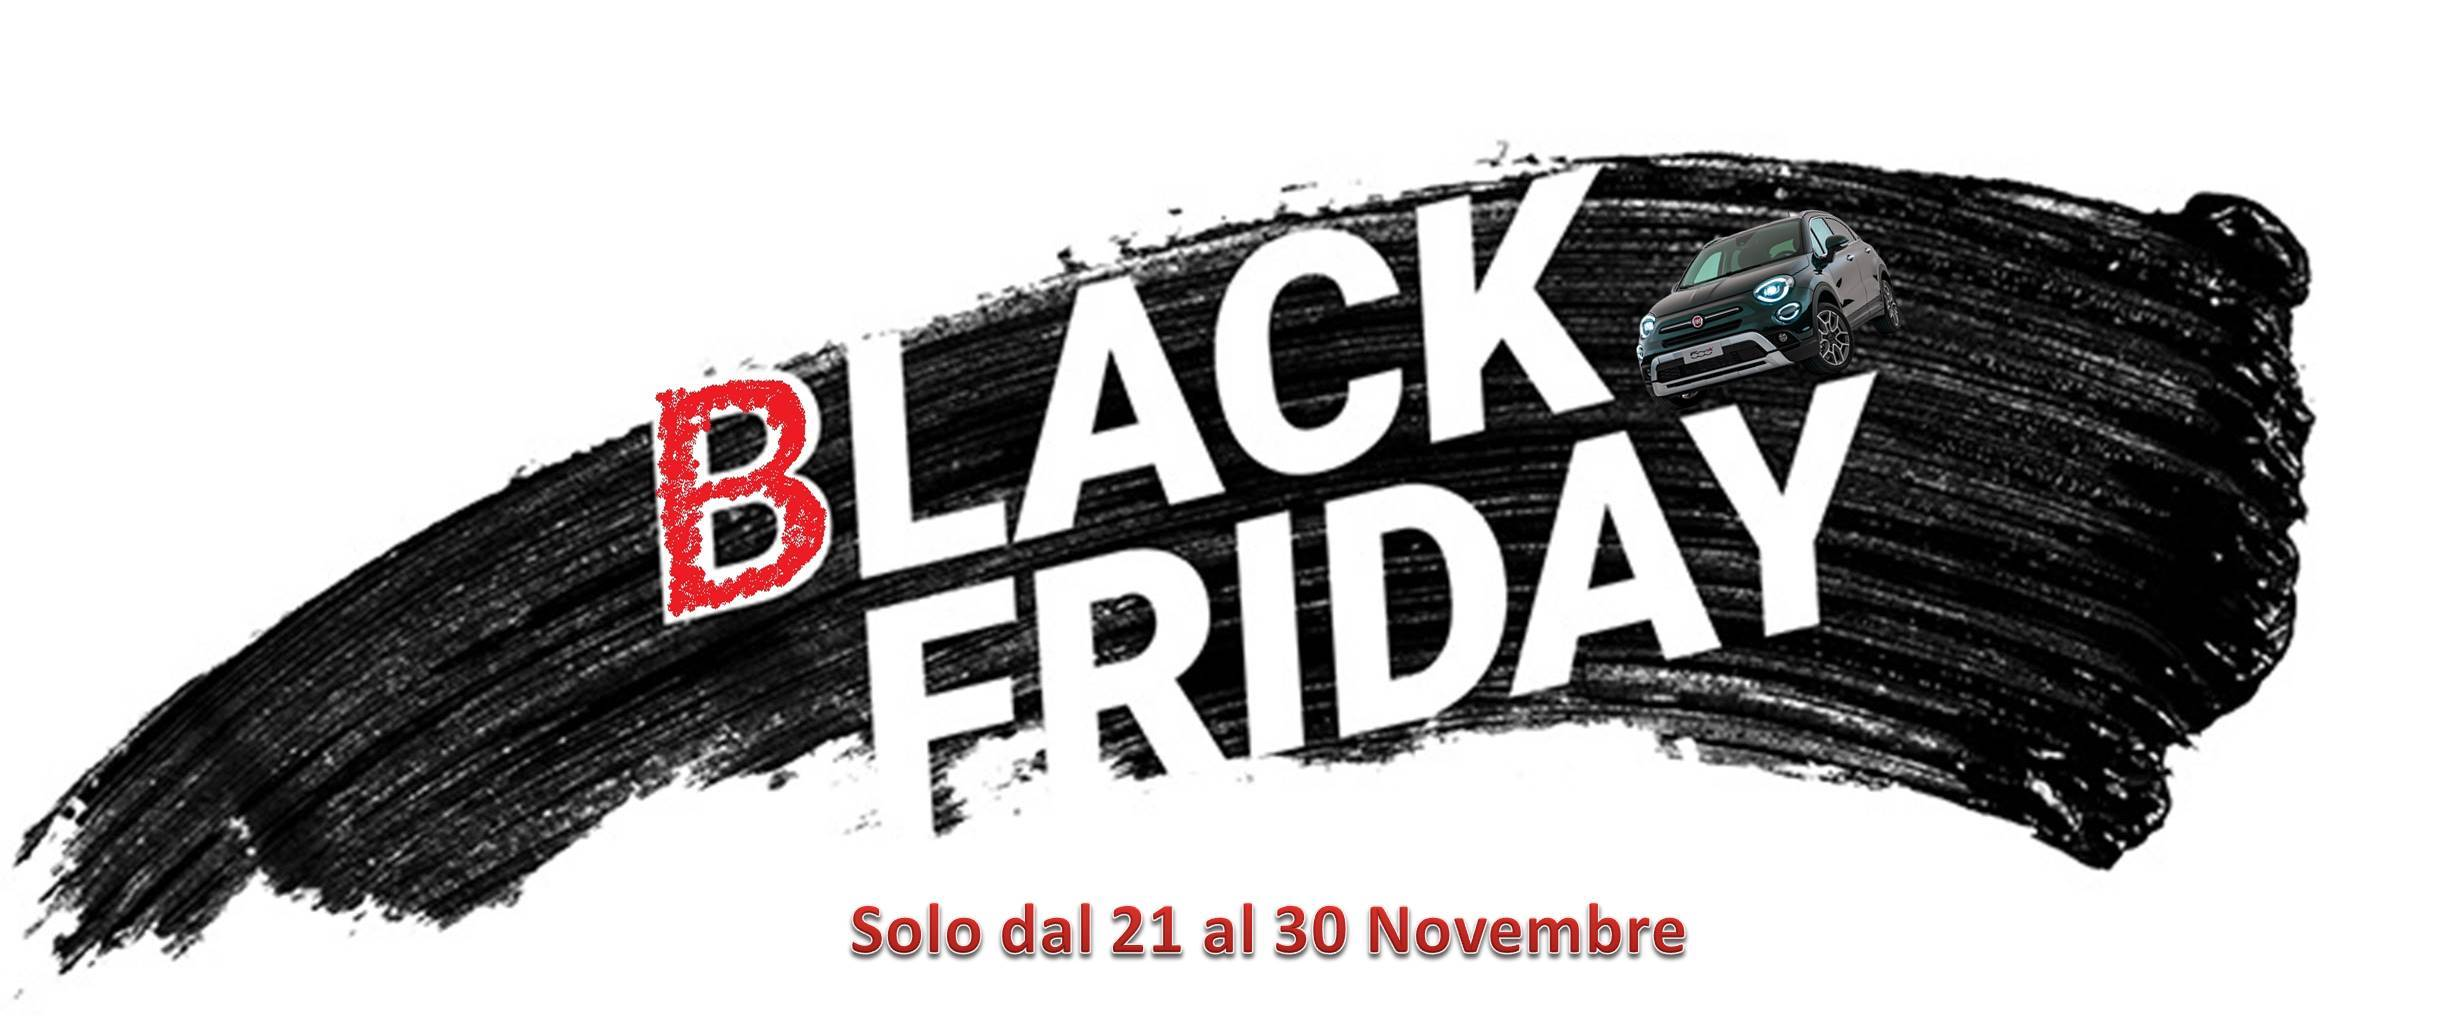 BLACK FRIDAY: solo dal 21 al 30 Novembre